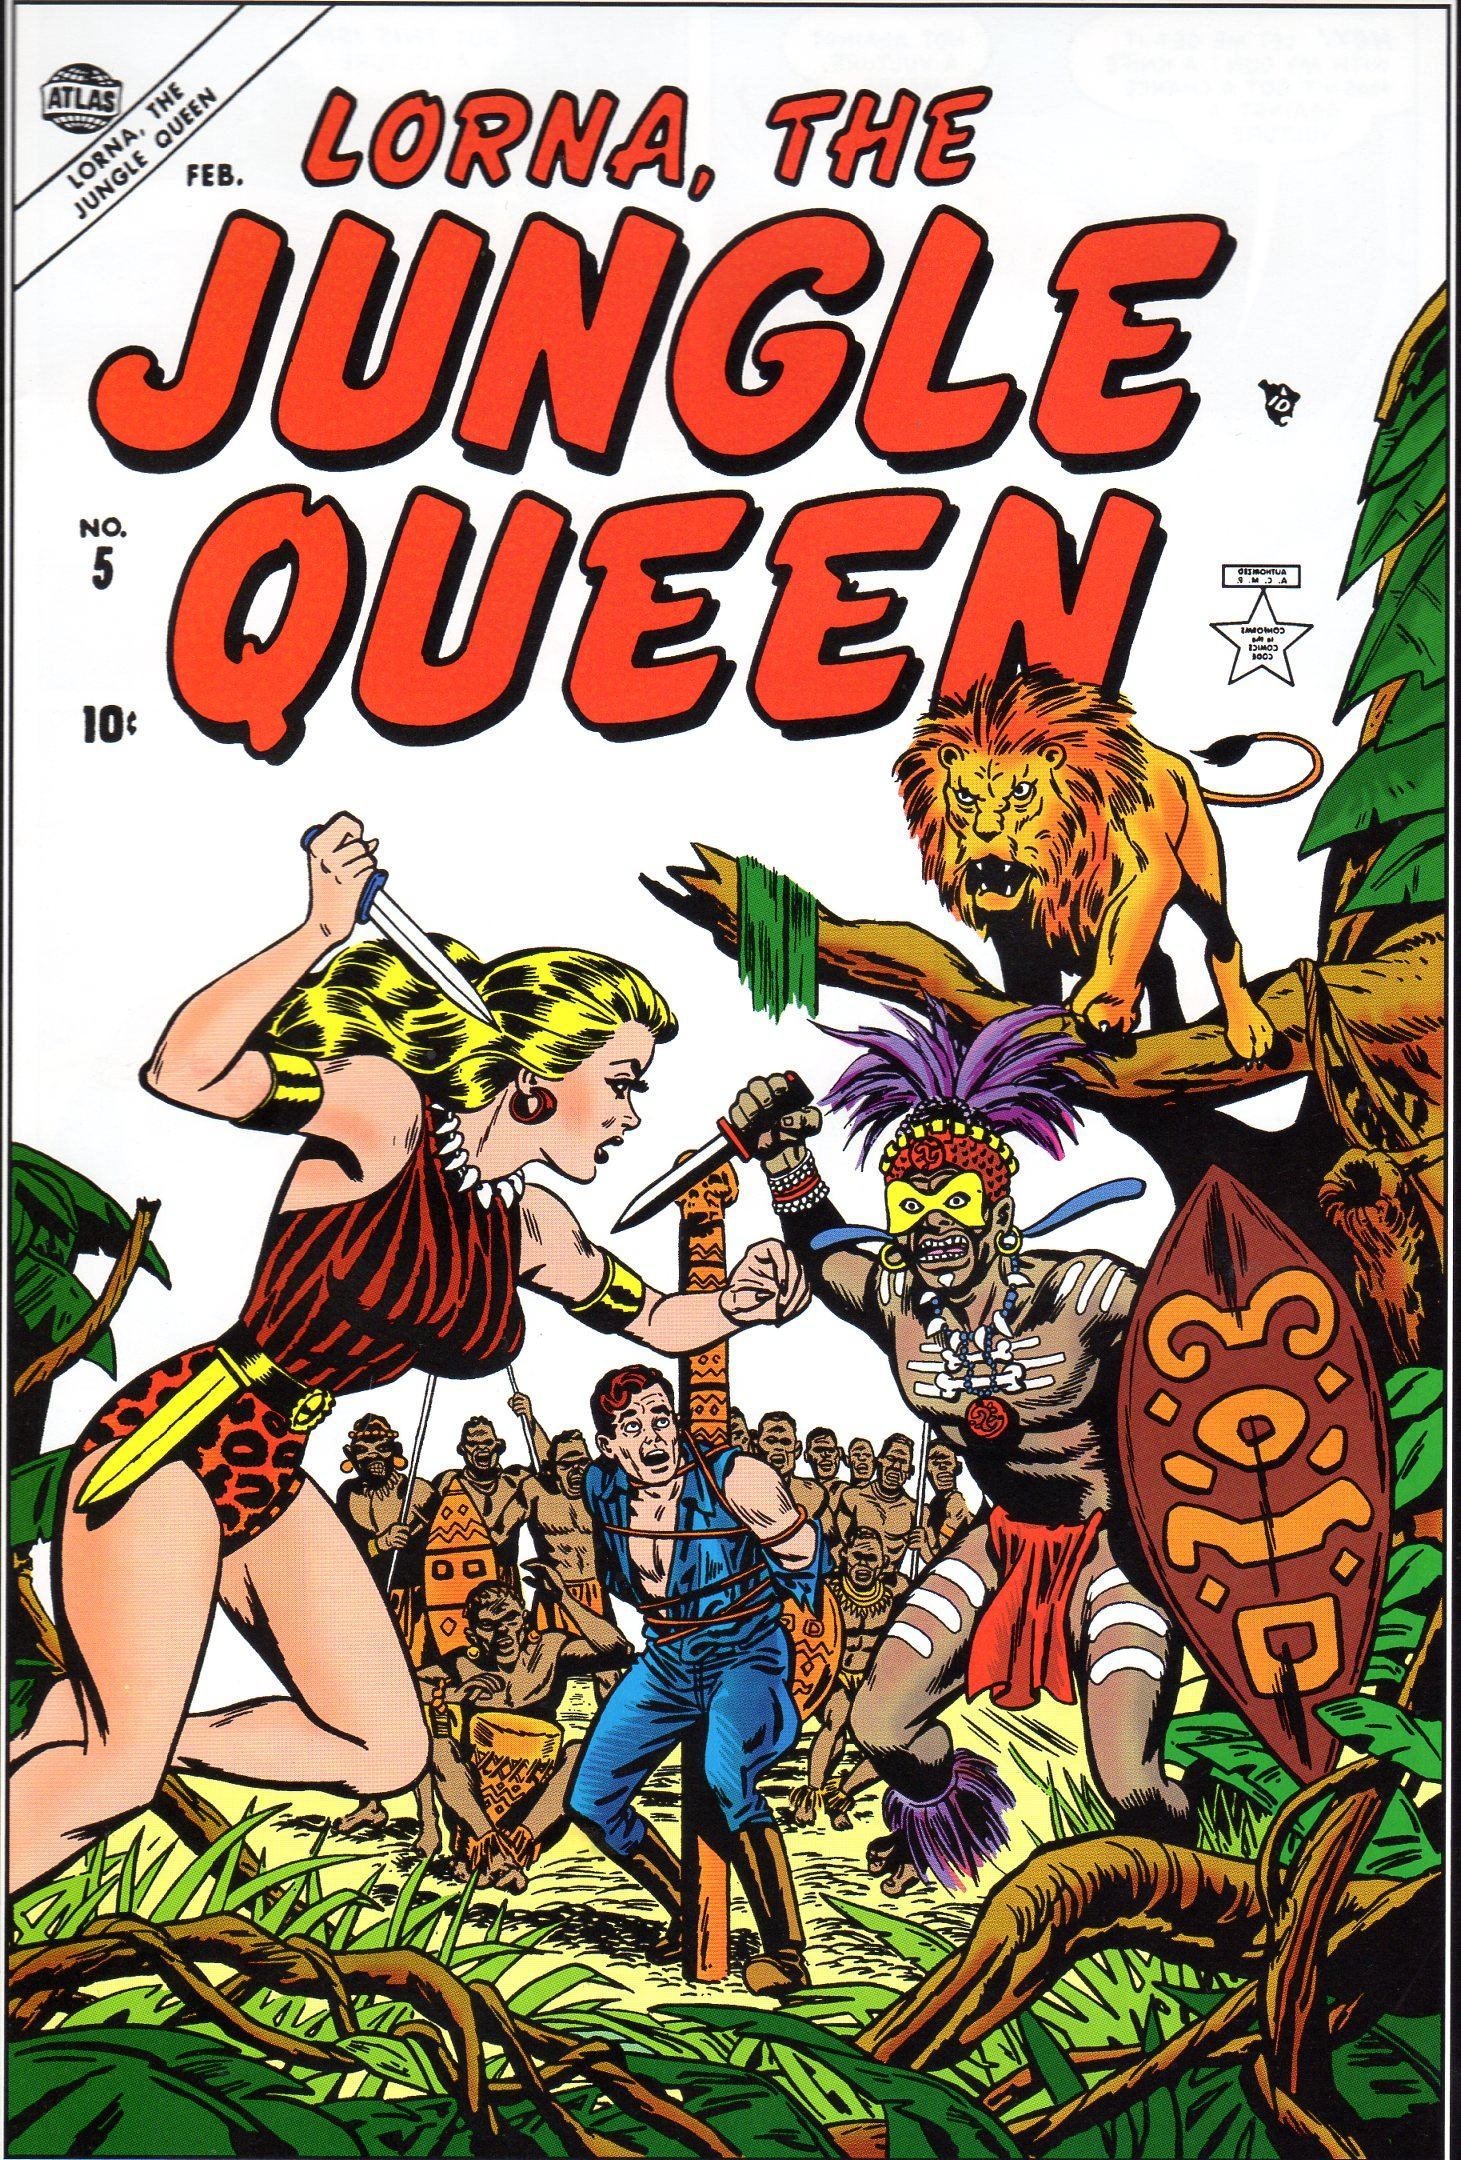 Read online Lorna, The Jungle Queen comic -  Issue #5 - 1